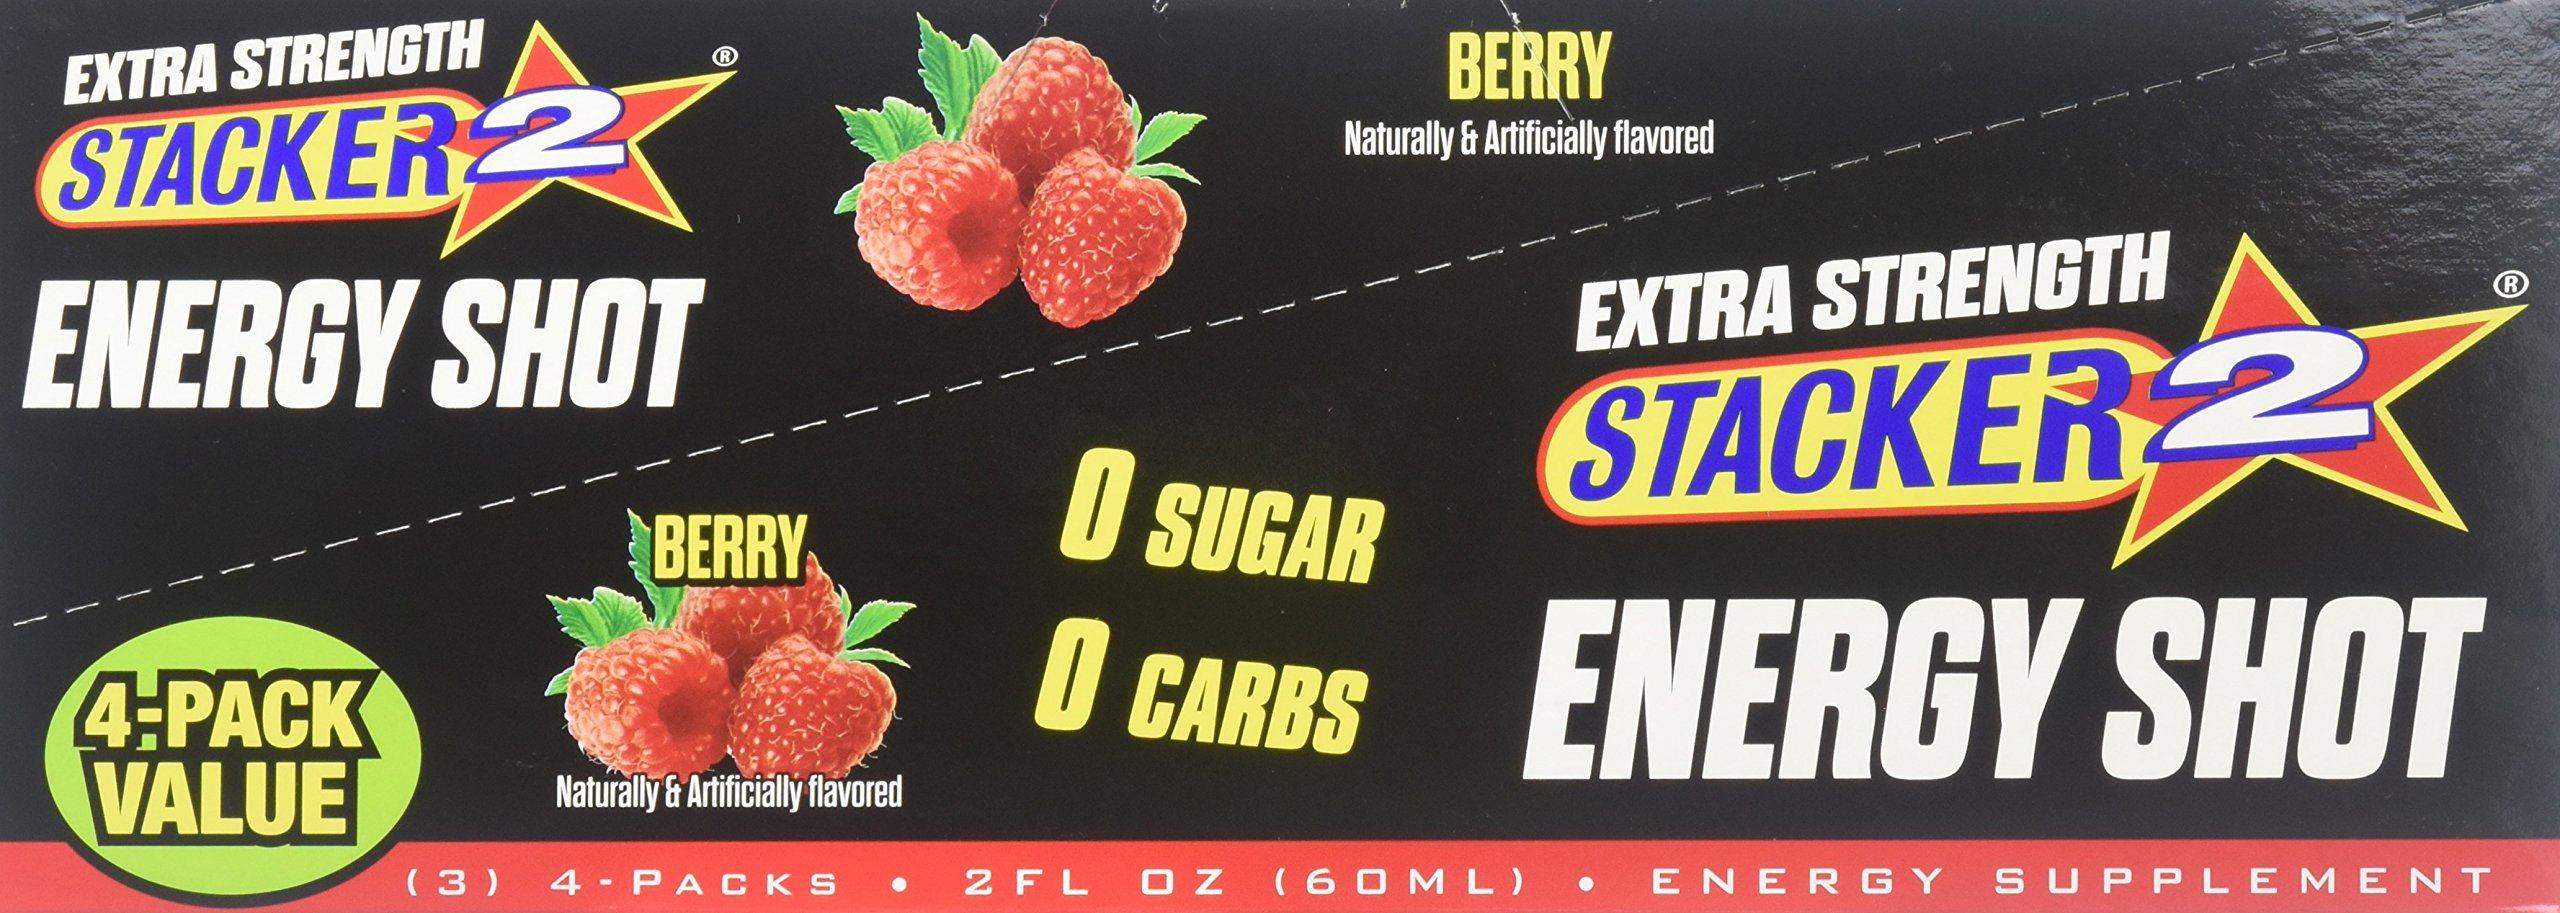 Stacker 2 Extra Strength Energy Shots, Berry, 12 Pack (4)